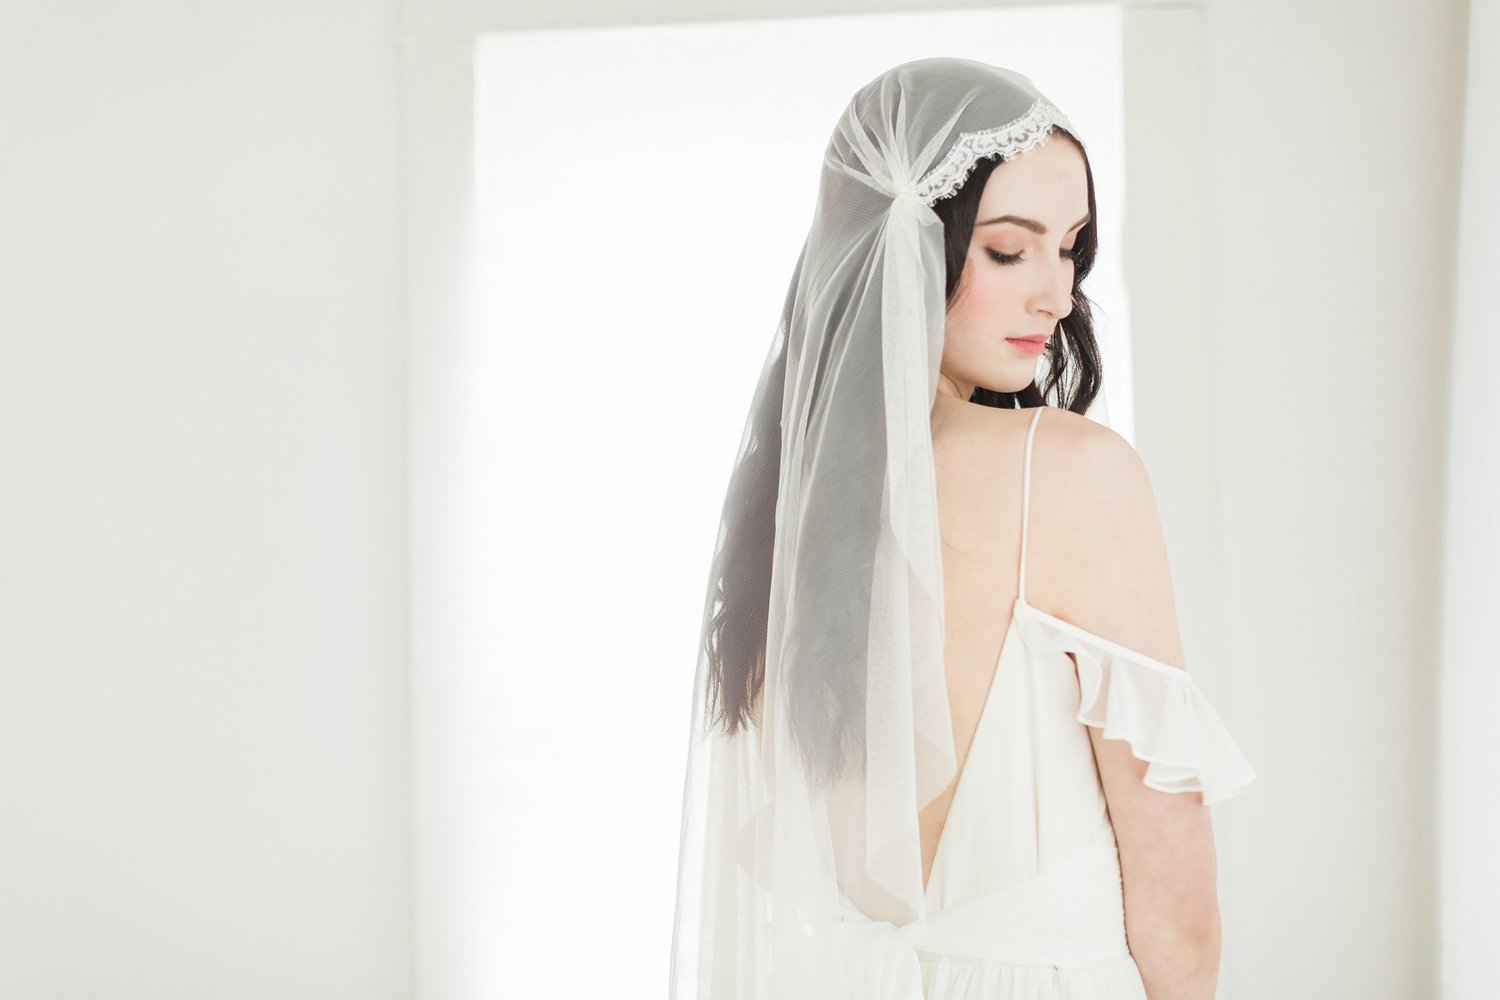 Art Deco Juliet Cap Bridal Veil from Mignonne Handmade